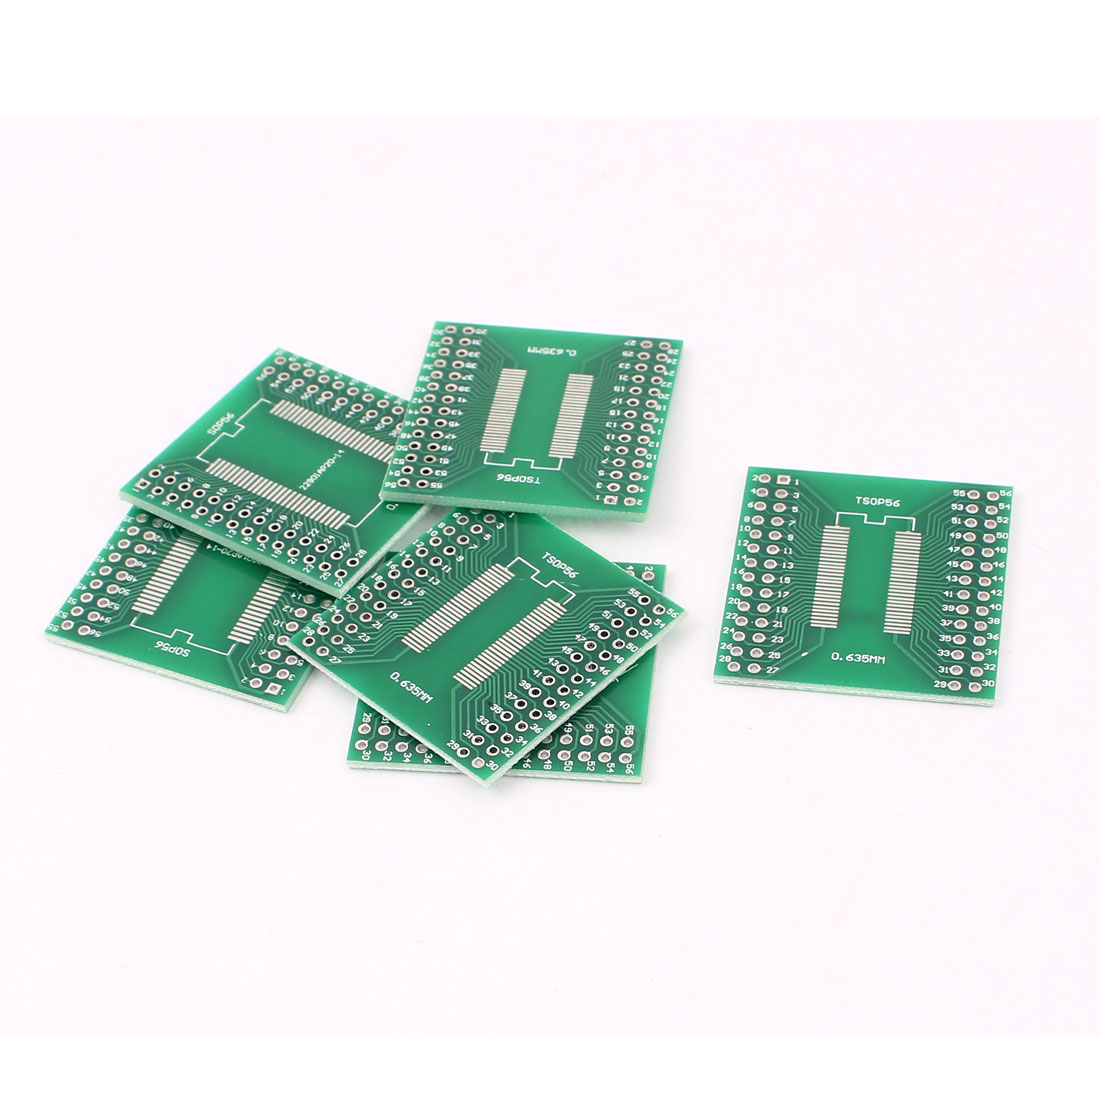 6Pcs 0.635mm 0.8mm SSOP56 TSSOP56 to 2.54mm DIP56 SMD IC PCB Adapter Socket